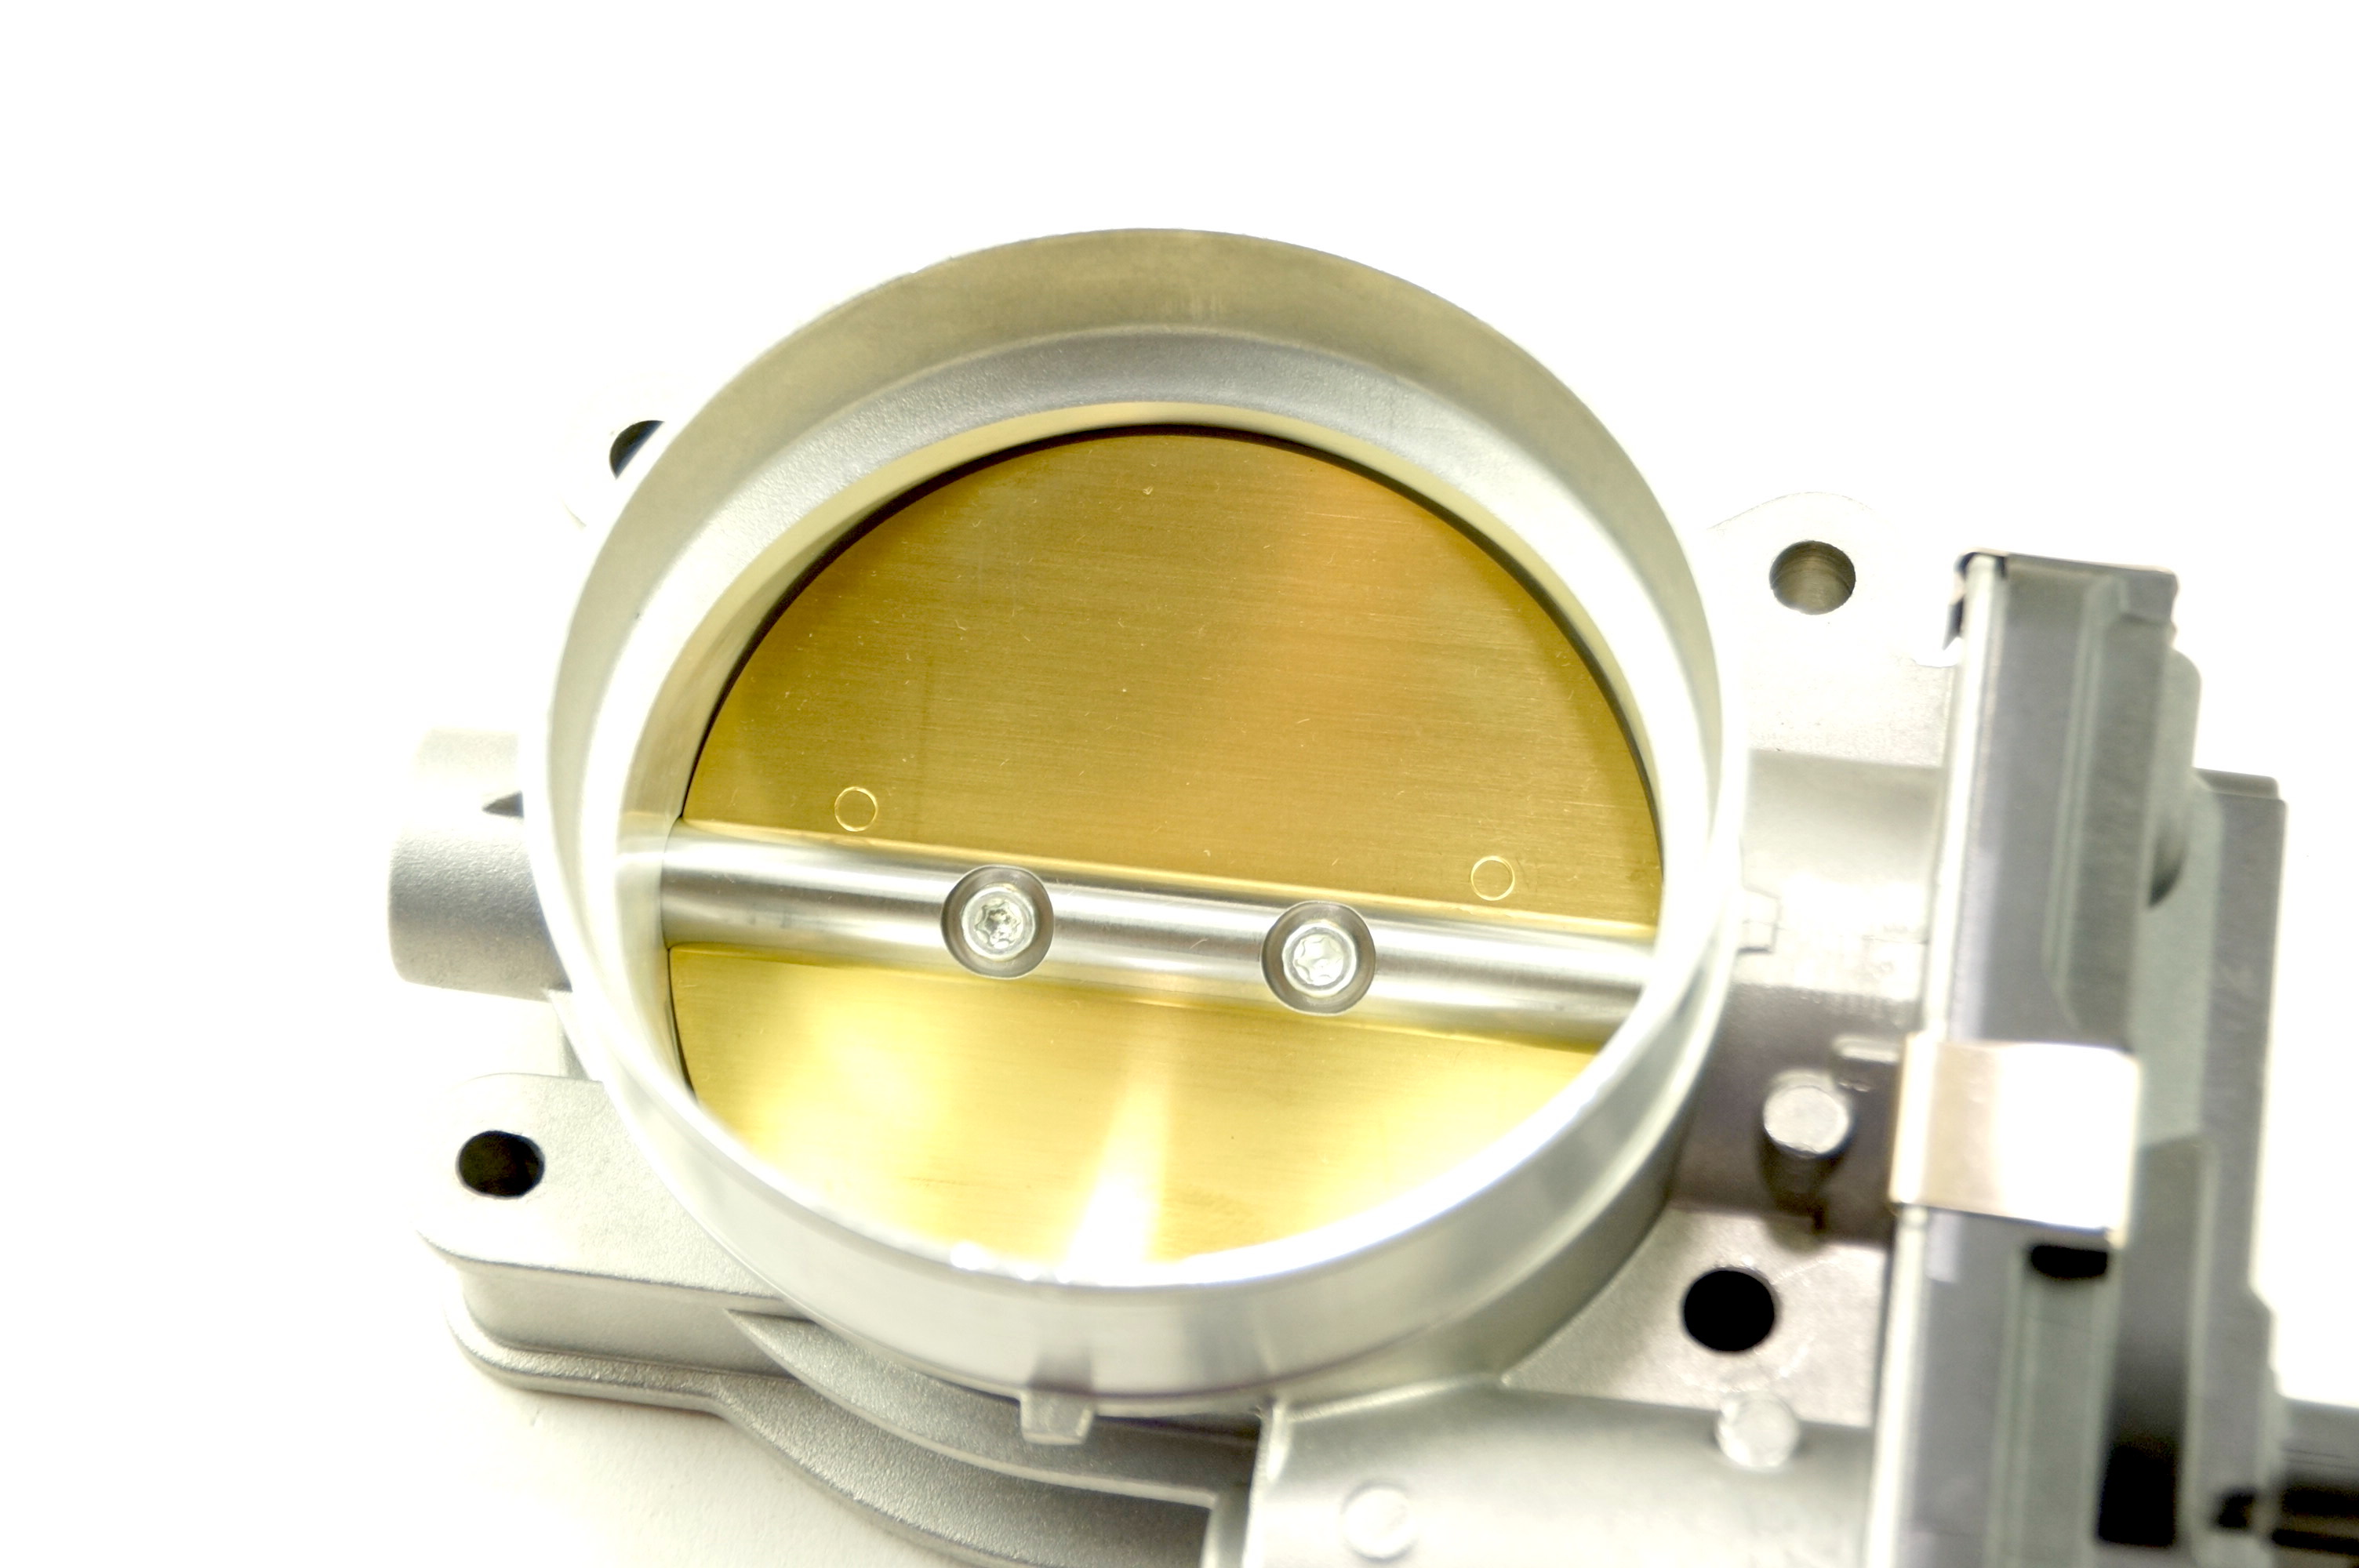 Genuine OEM GR3Z9E926A Ford 15-17 Mustang Throttle Body New Fast Free Shipping - image 5